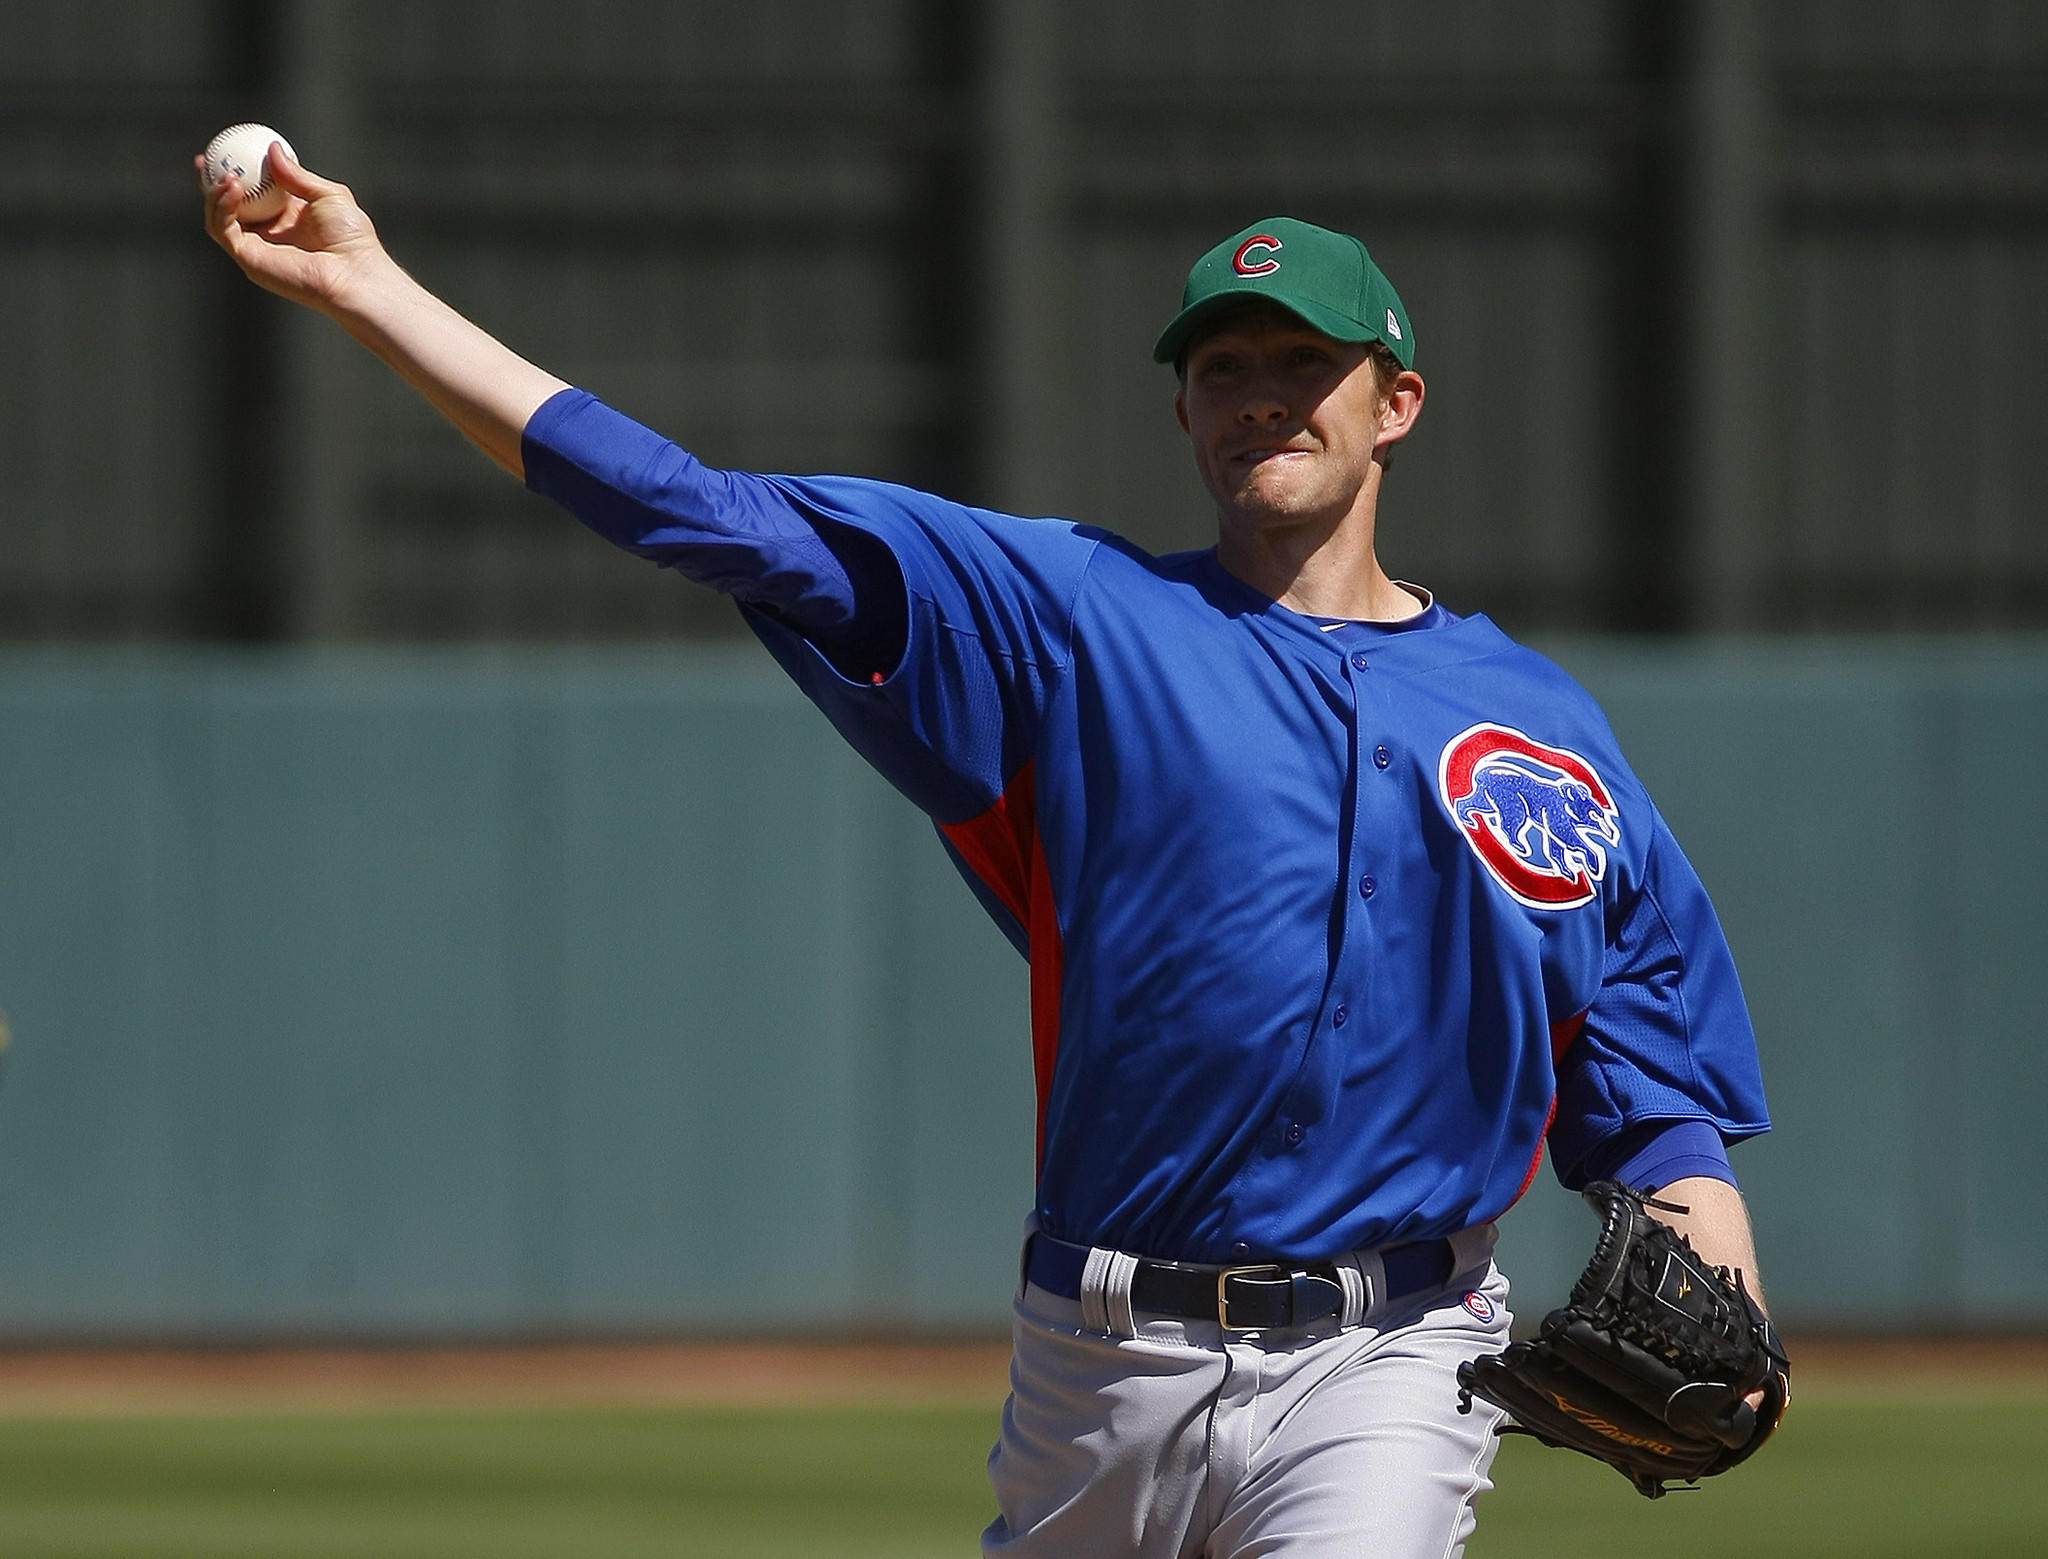 Cubs starting pitcher Scott Baker throws in the first inning during a spring training game against Oakland.